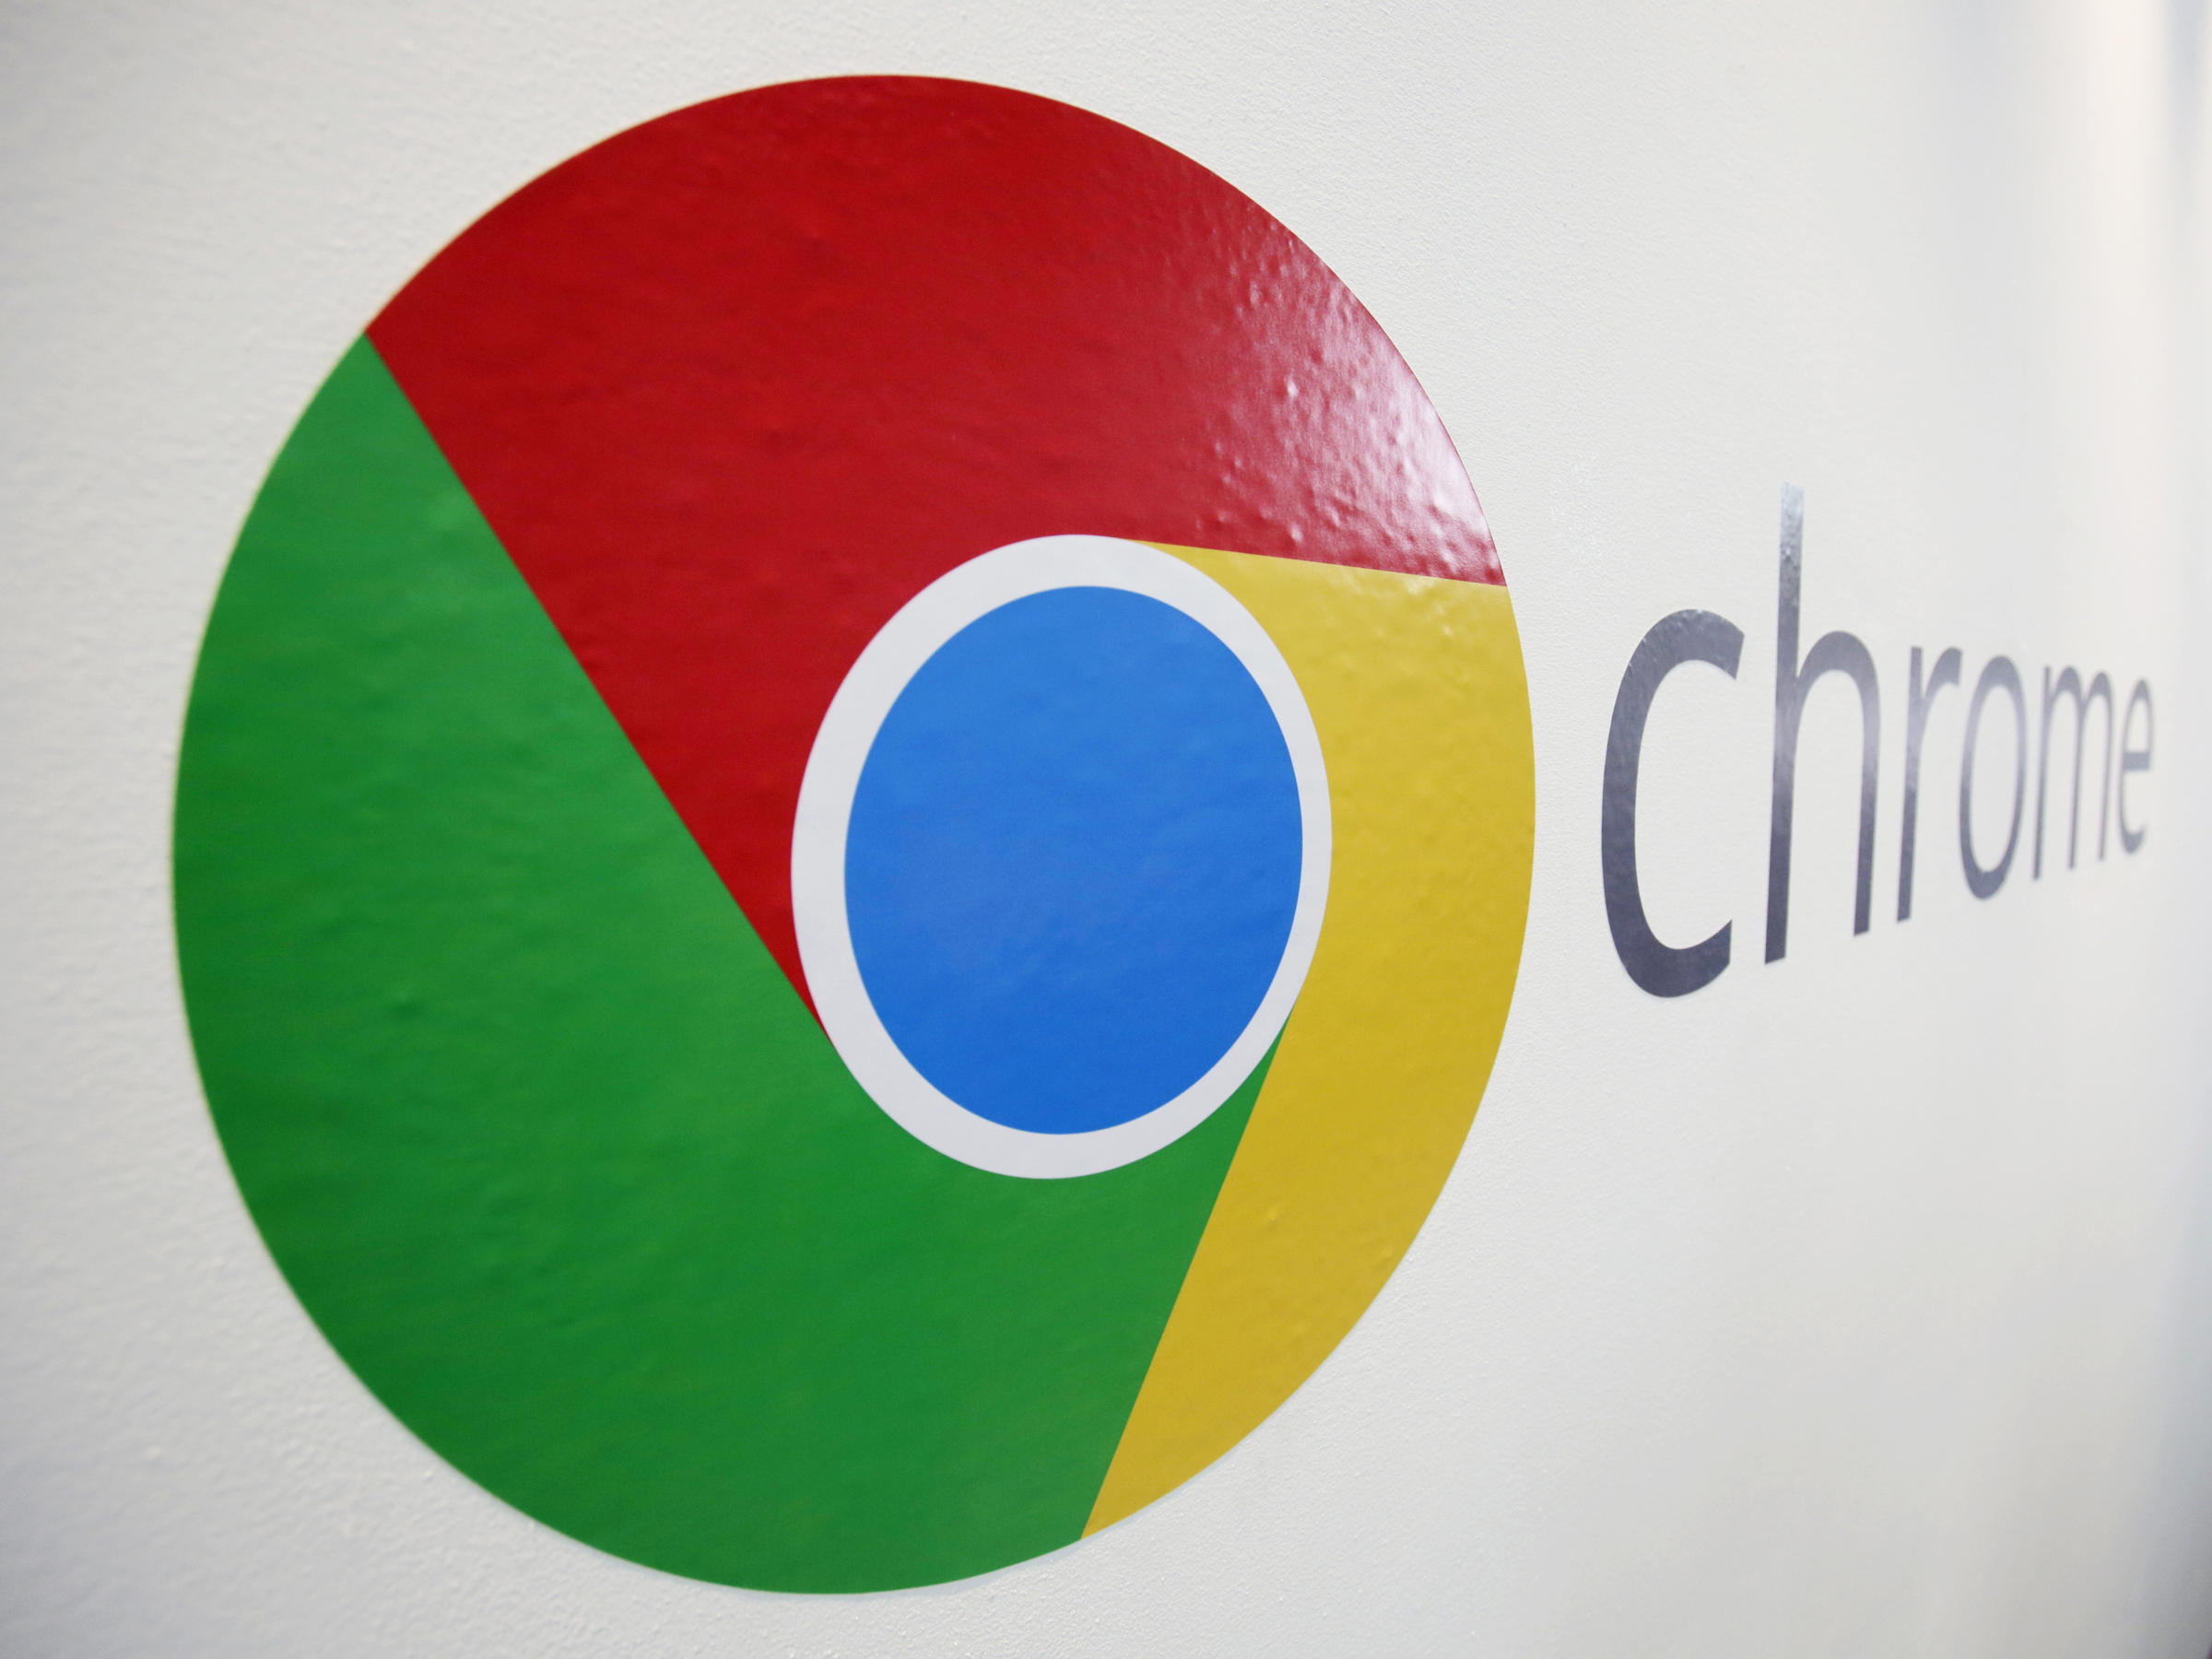 The Chrome logo is displayed at a Google event in New York in 2013